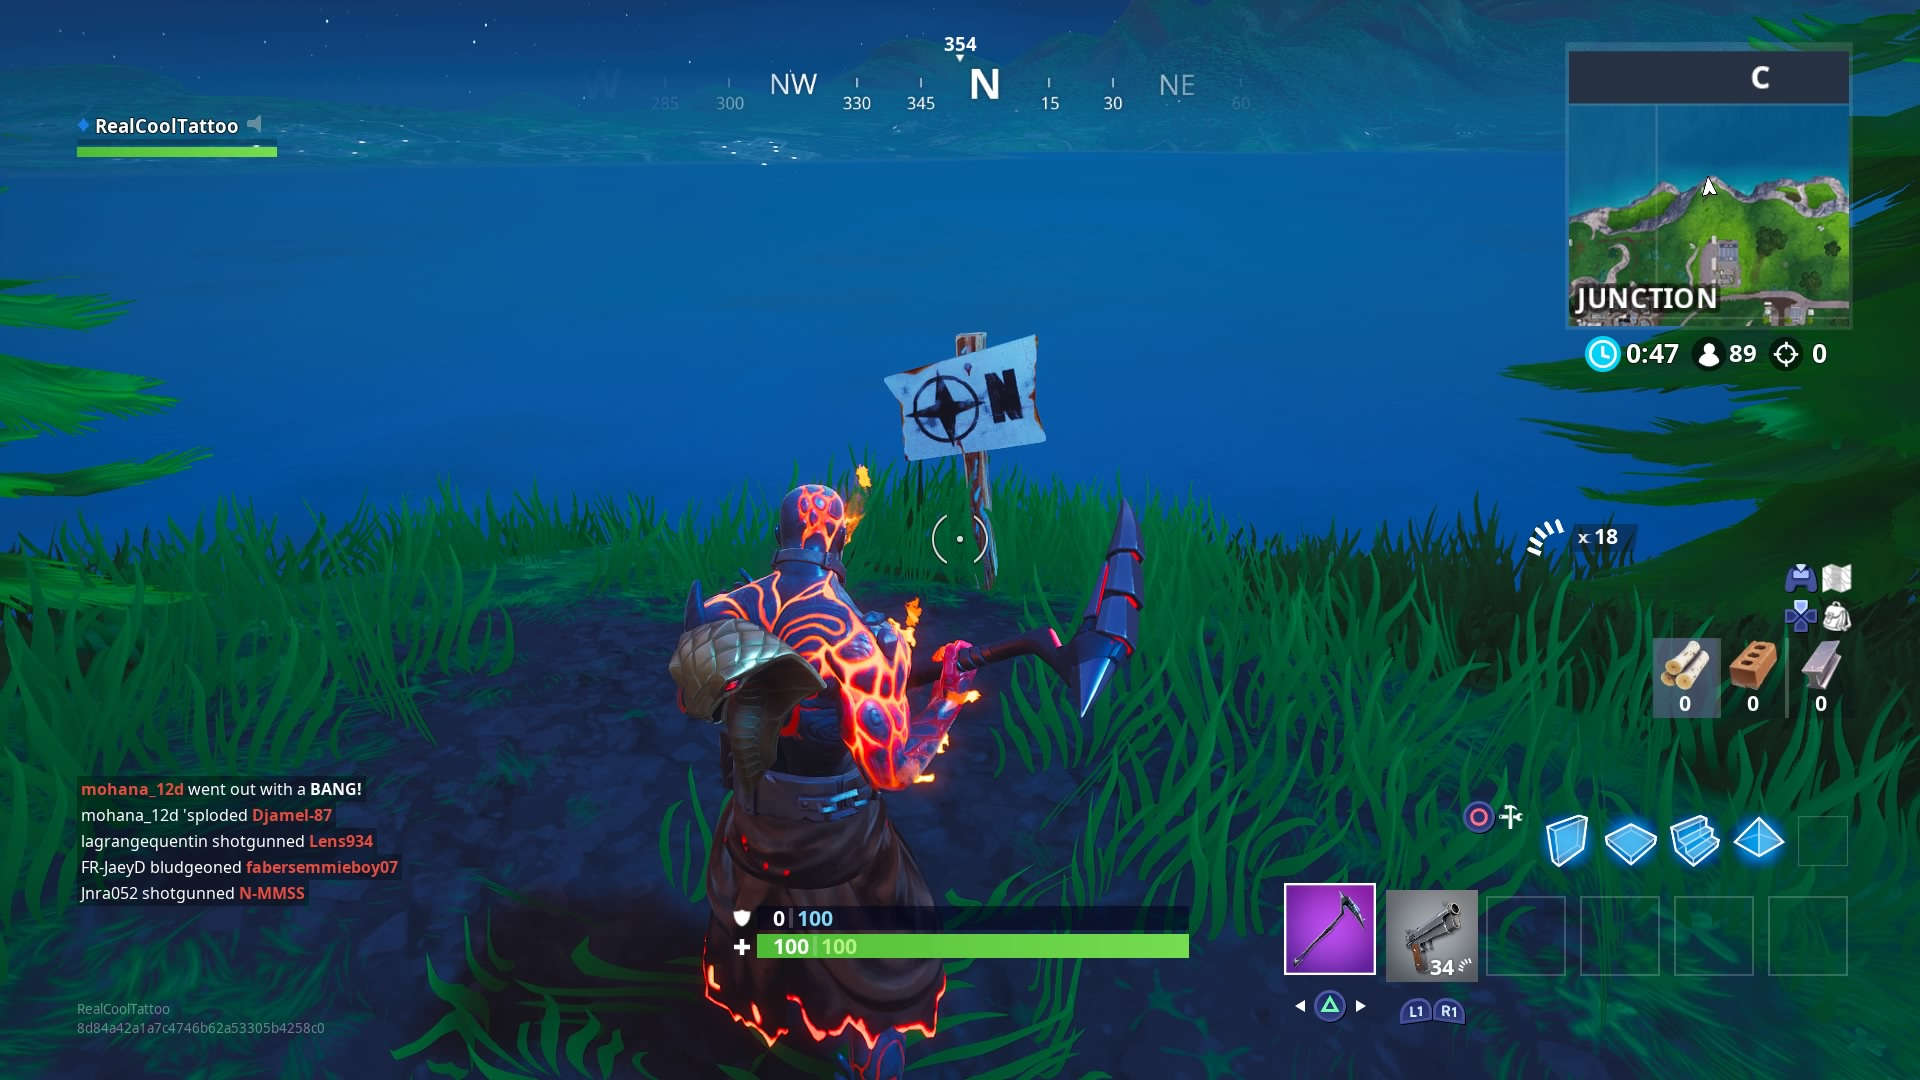 fortnite visit the furthest north south east and west points of the island vg247 - fortnite furthest north south east west challenge